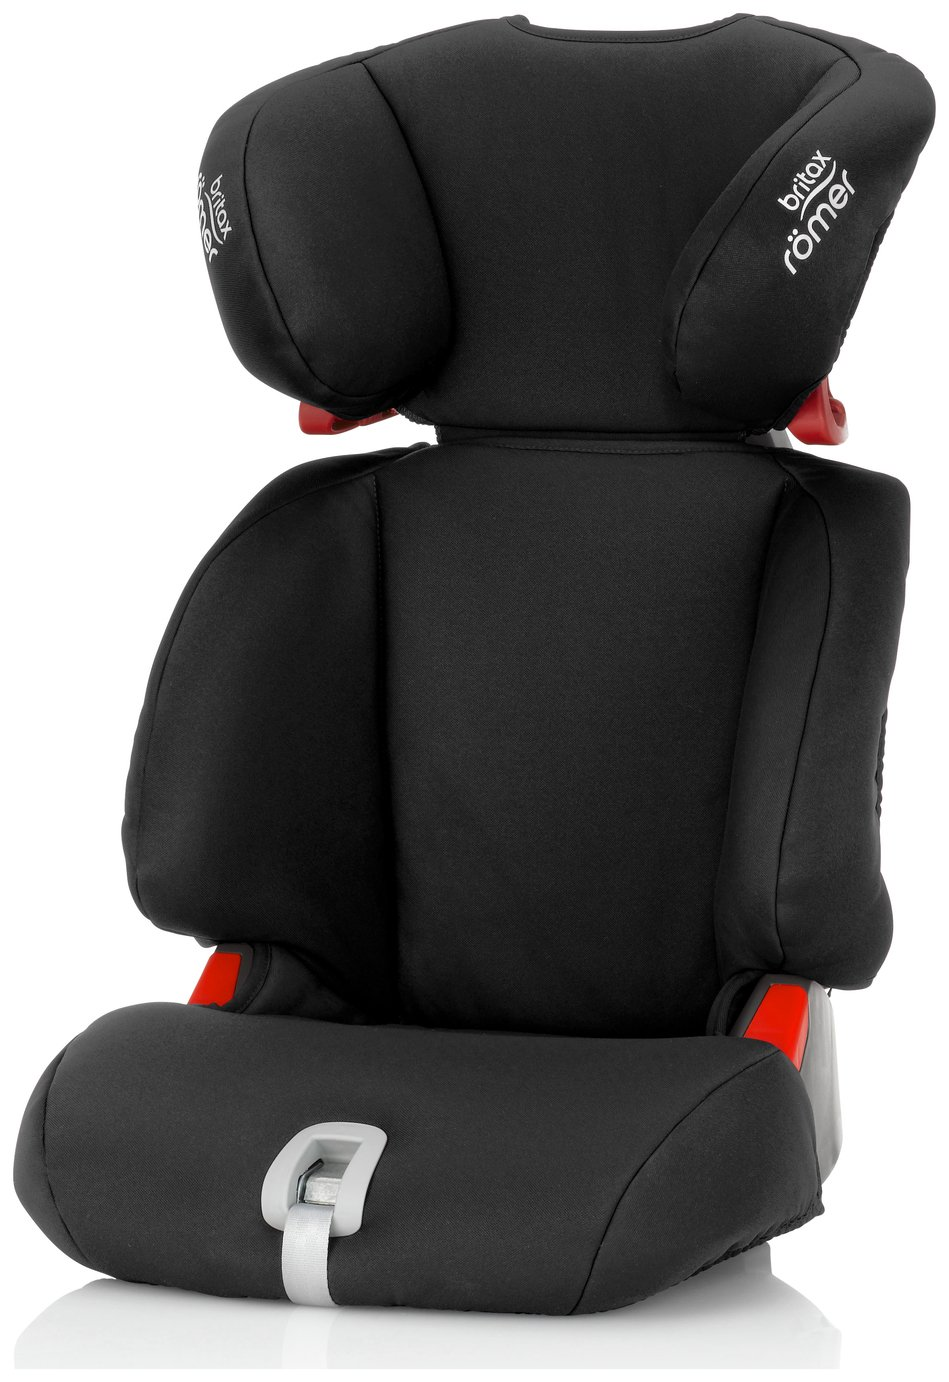 Britax Romer DISCOVERY SL Group 2-3 Car Seat - Cosmos Black